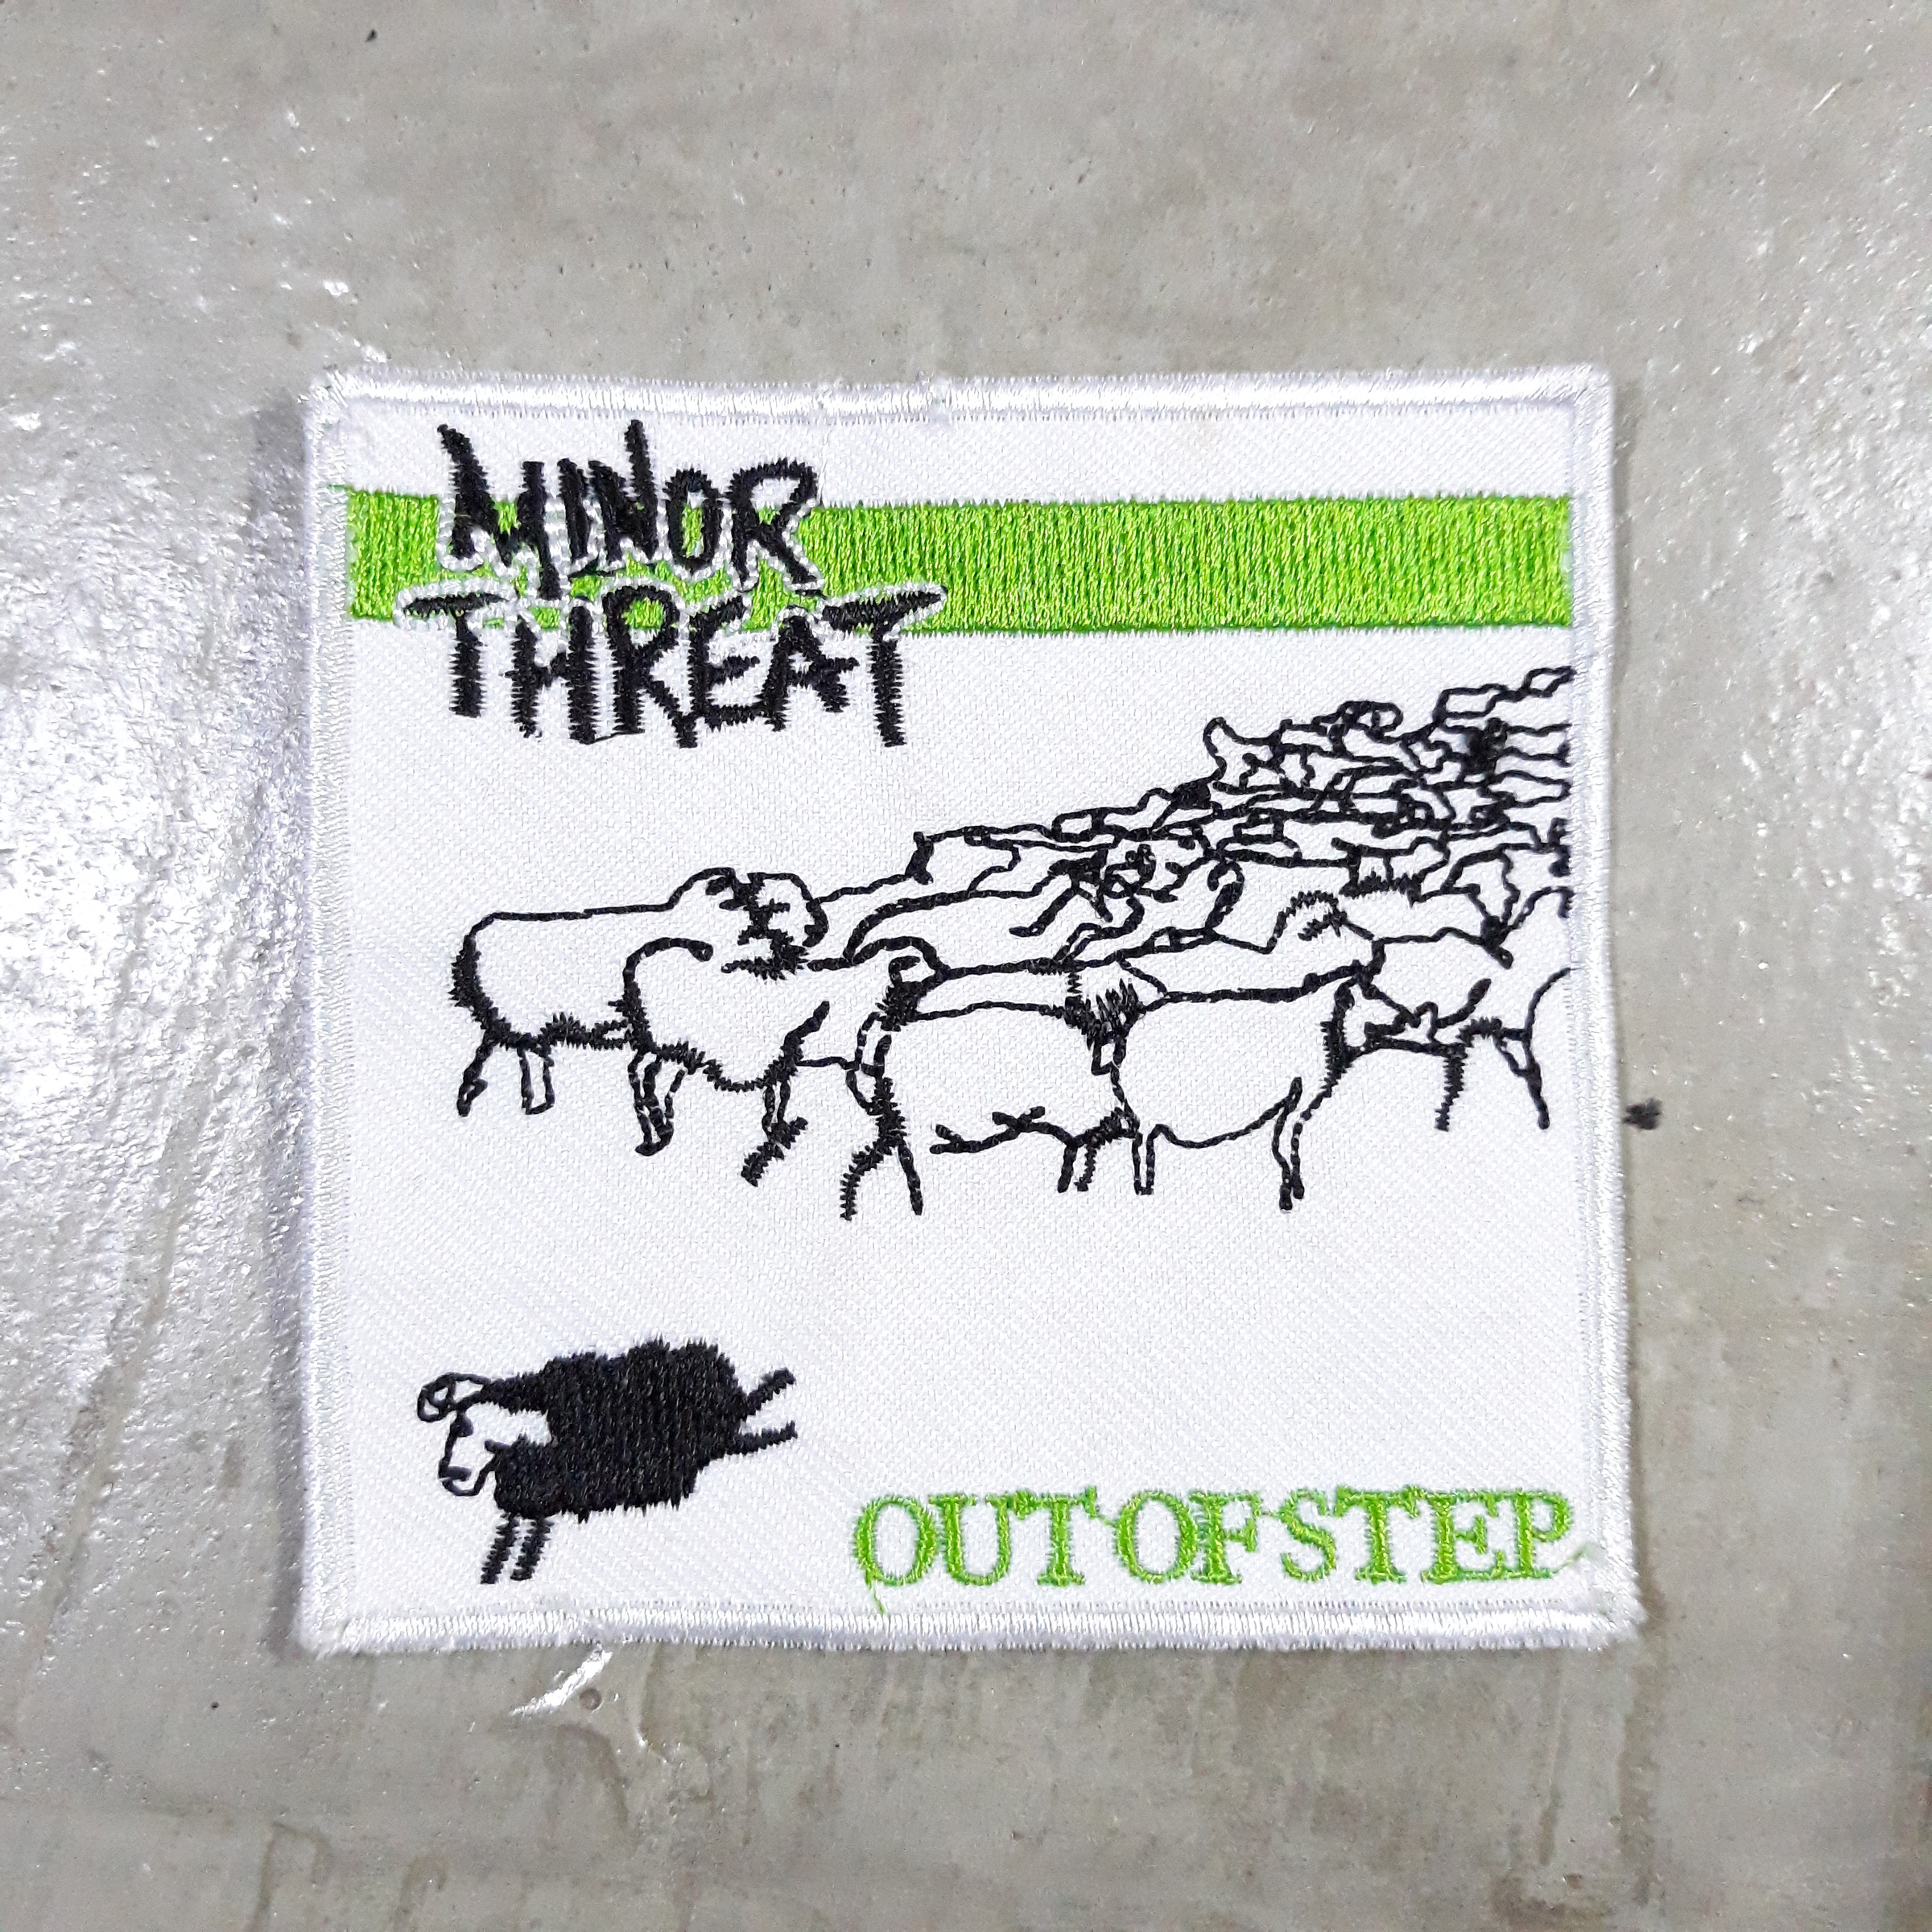 Minor threat-out of step patch.jpg